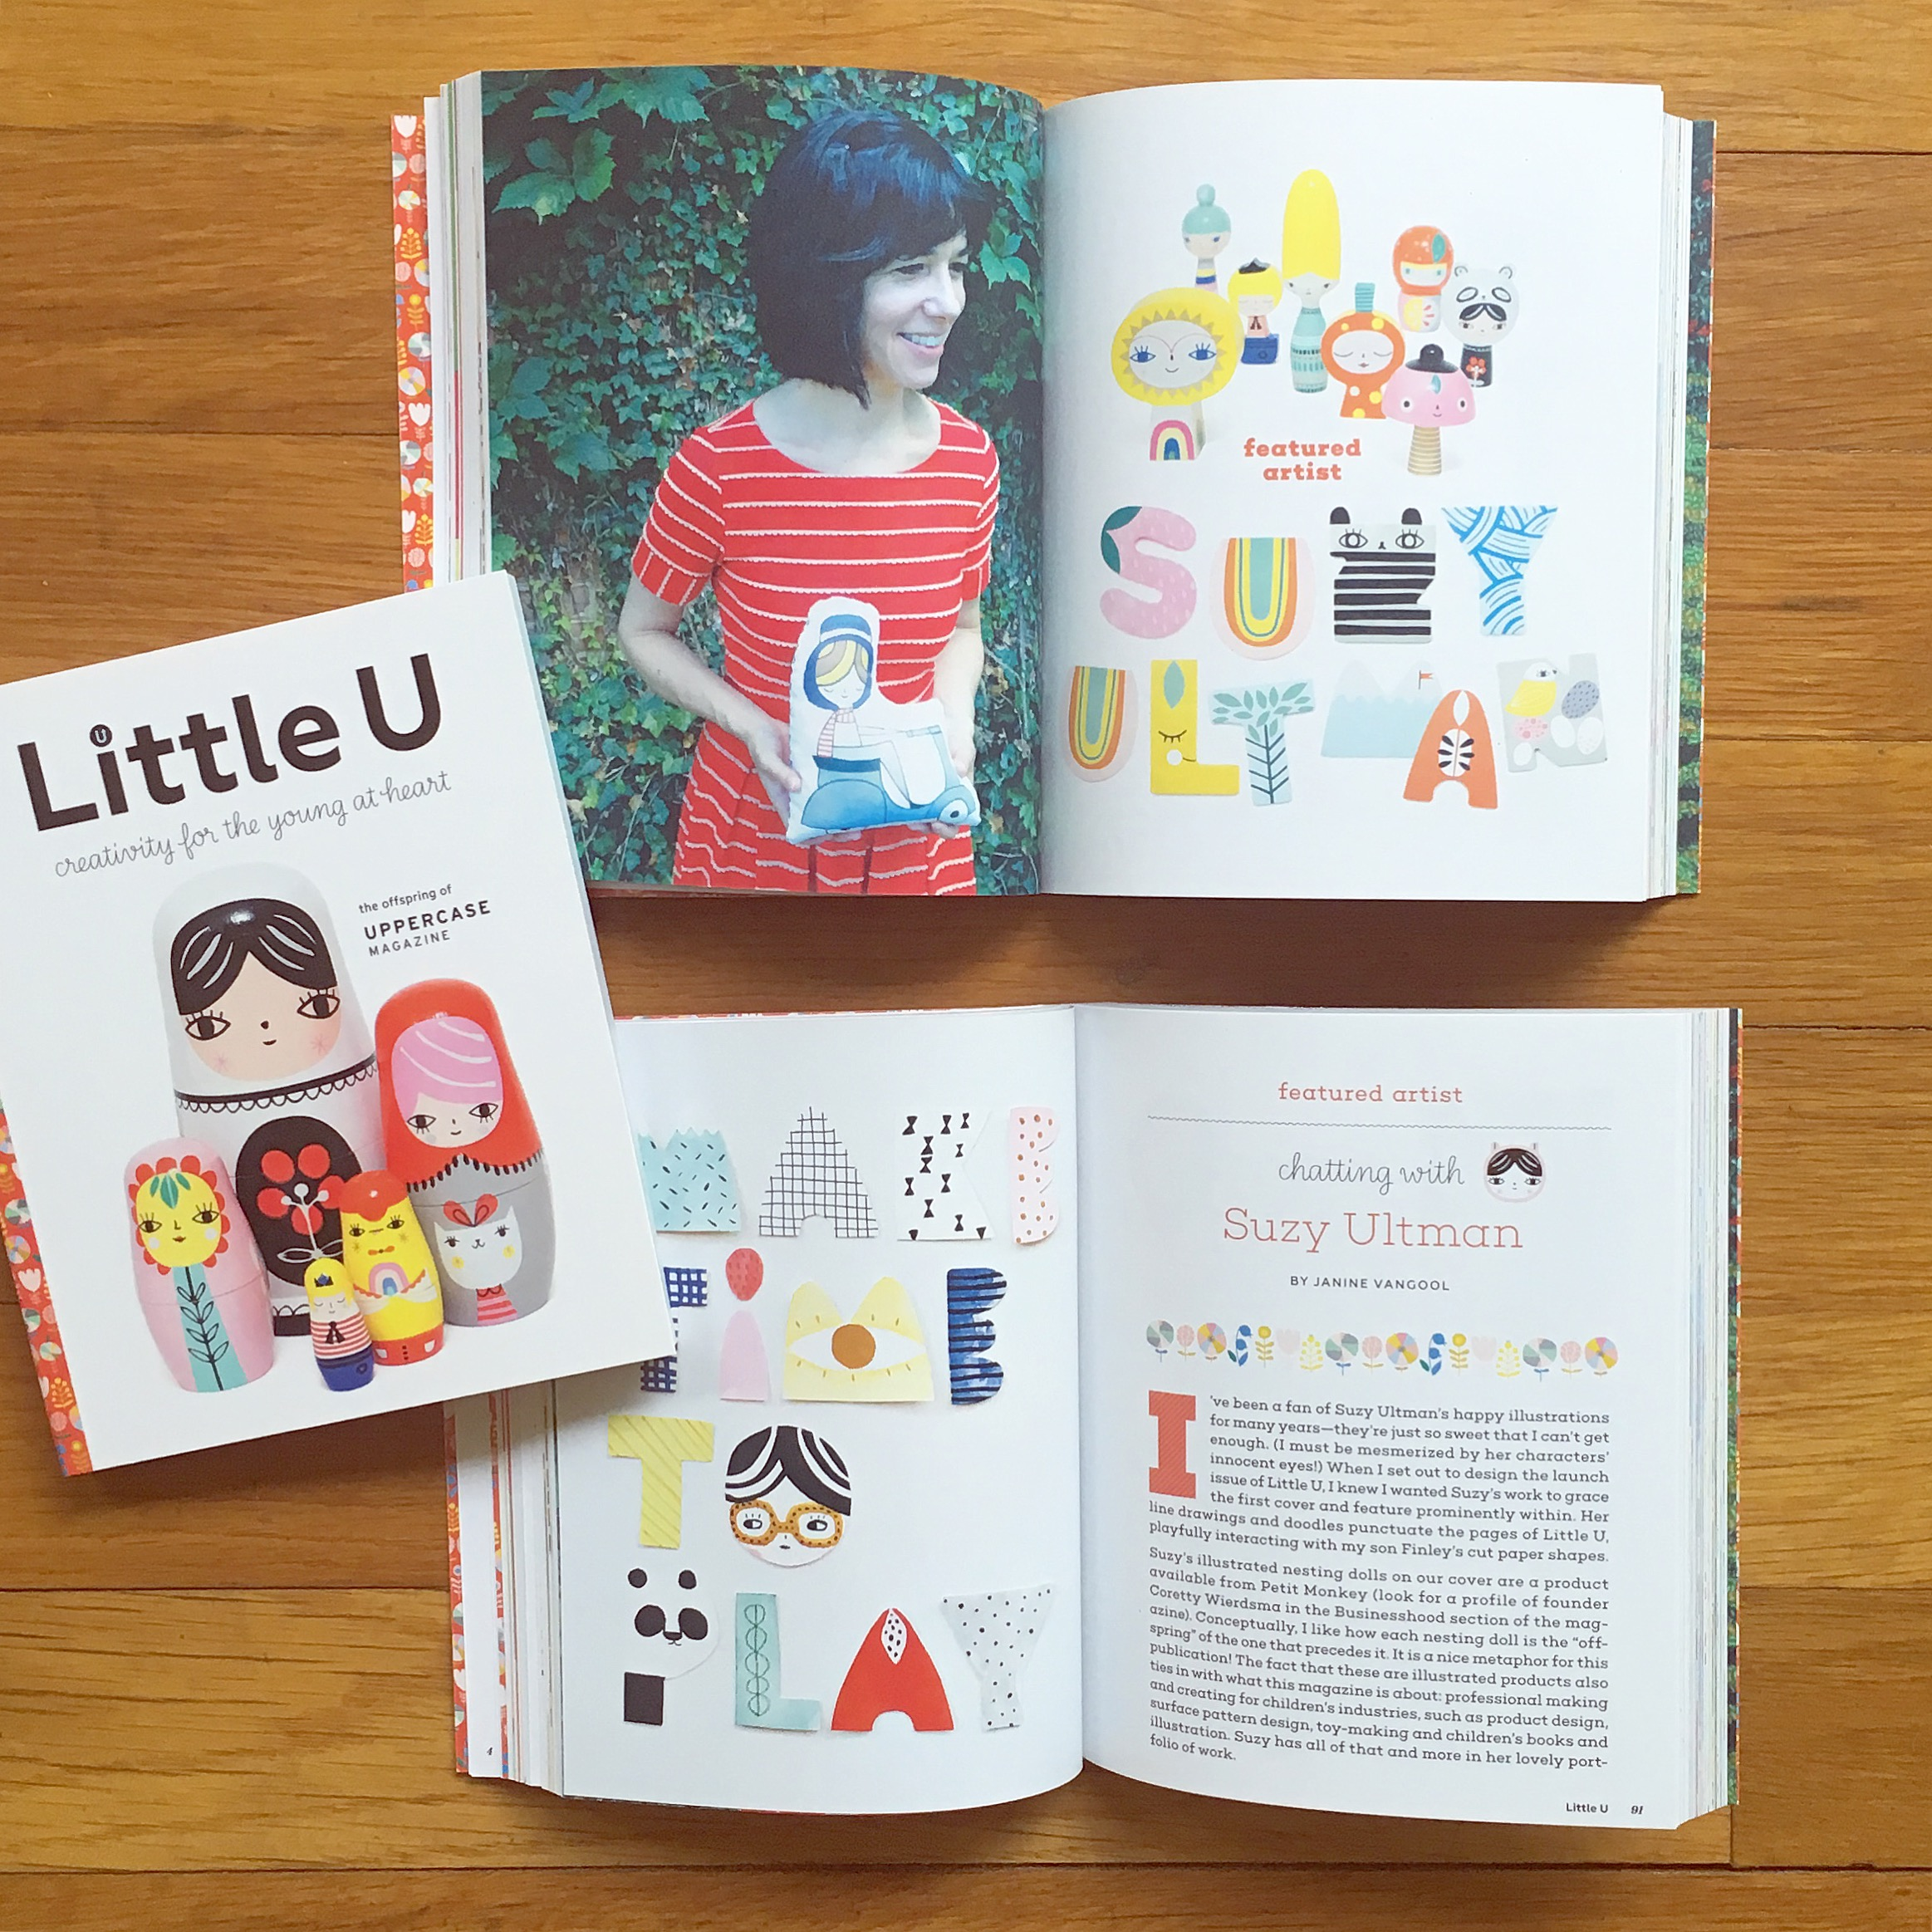 Book_LittleU_Cover_Spreads.JPG